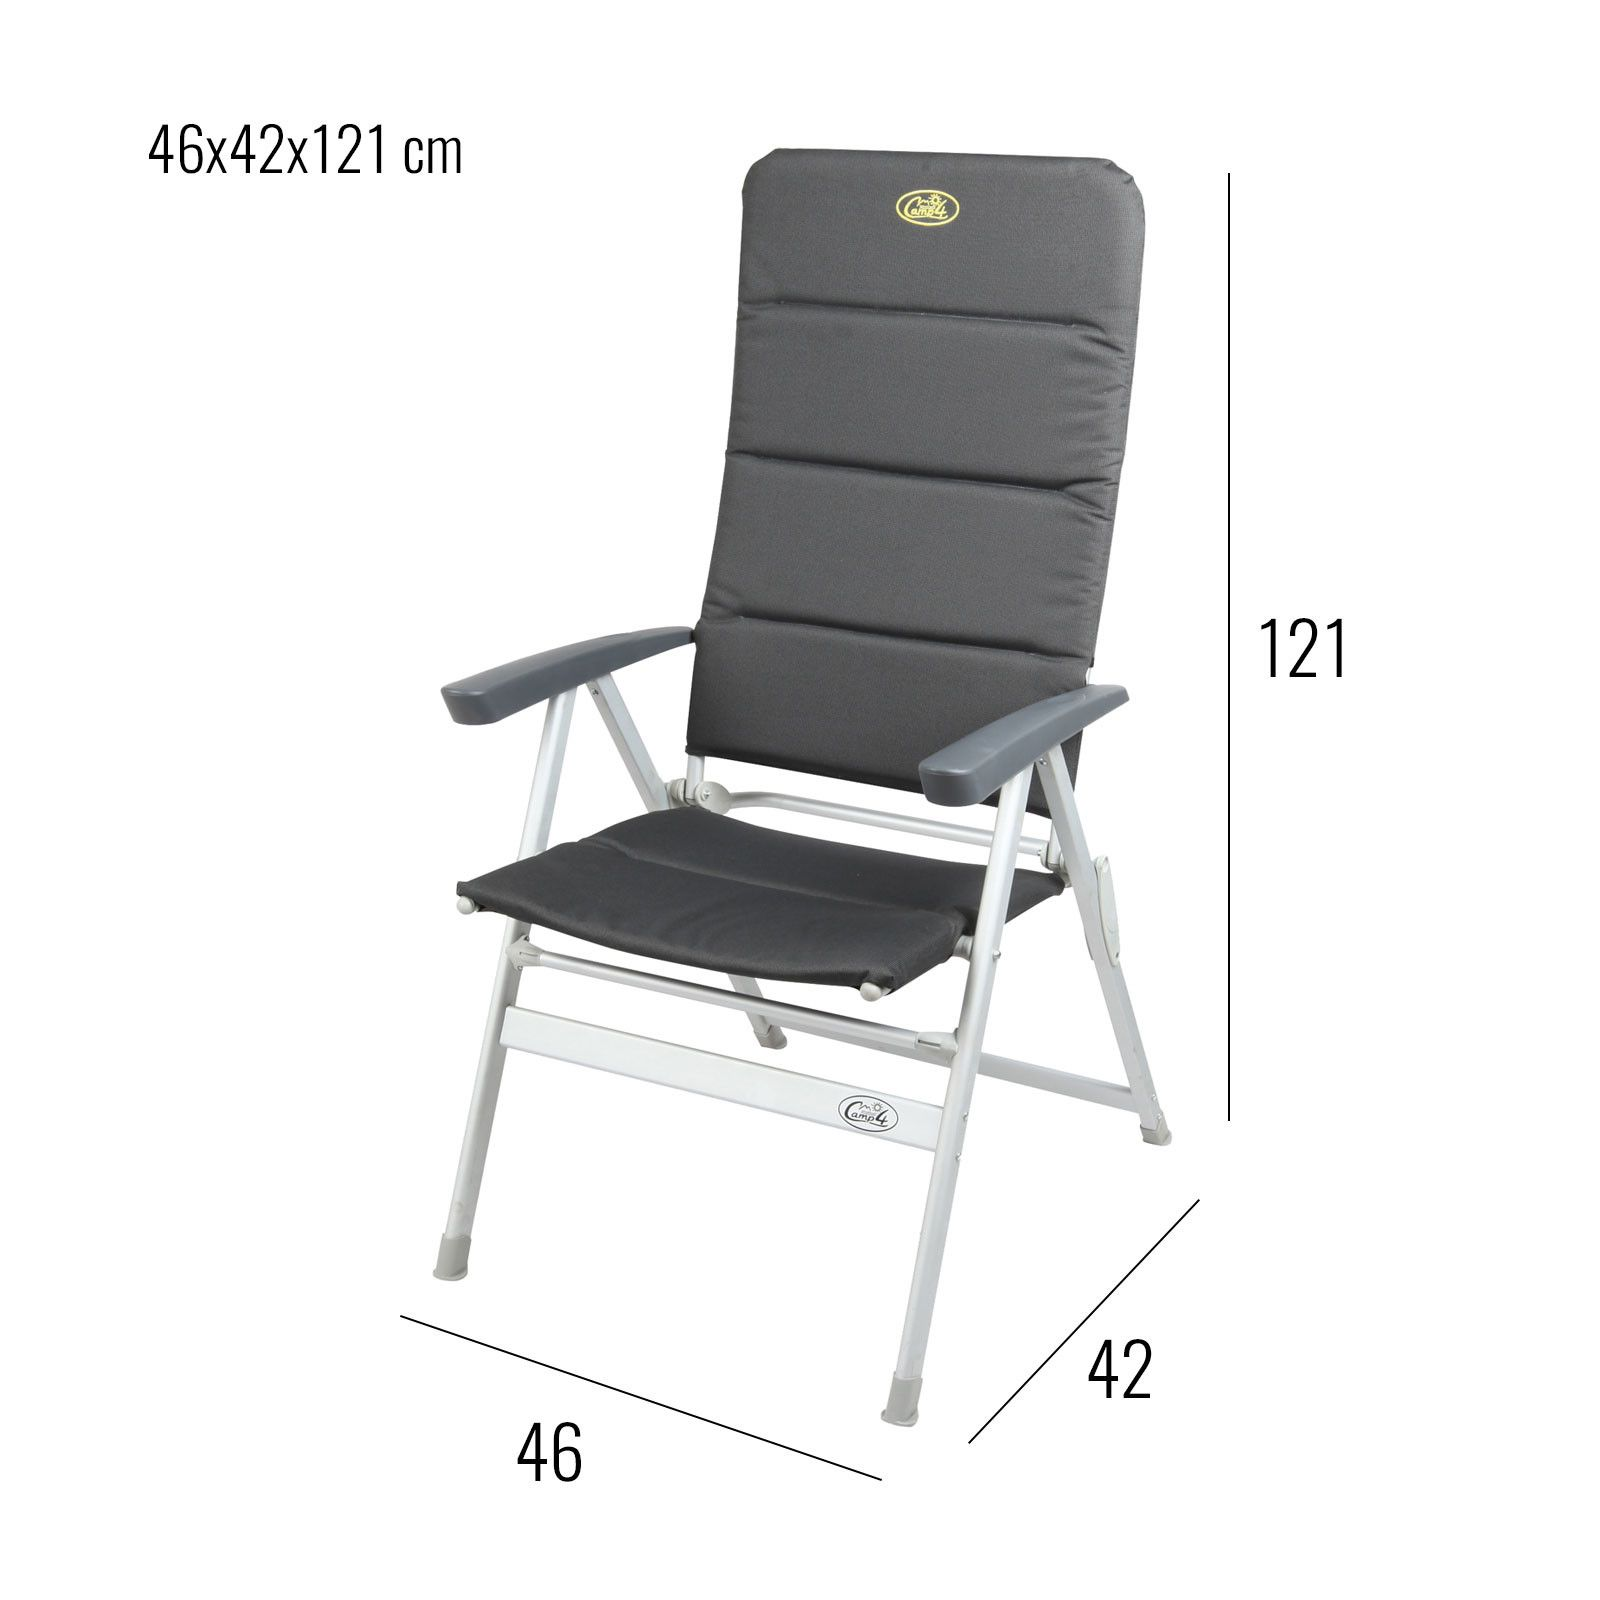 22 Luxe Fauteuil Camping Relax Image Fauteuilcampingrelax Fauteuilcampingrelaxgifi Fauteuilcampin Chaise Pliante Camping Fauteuil Pliable Chaise De Camping